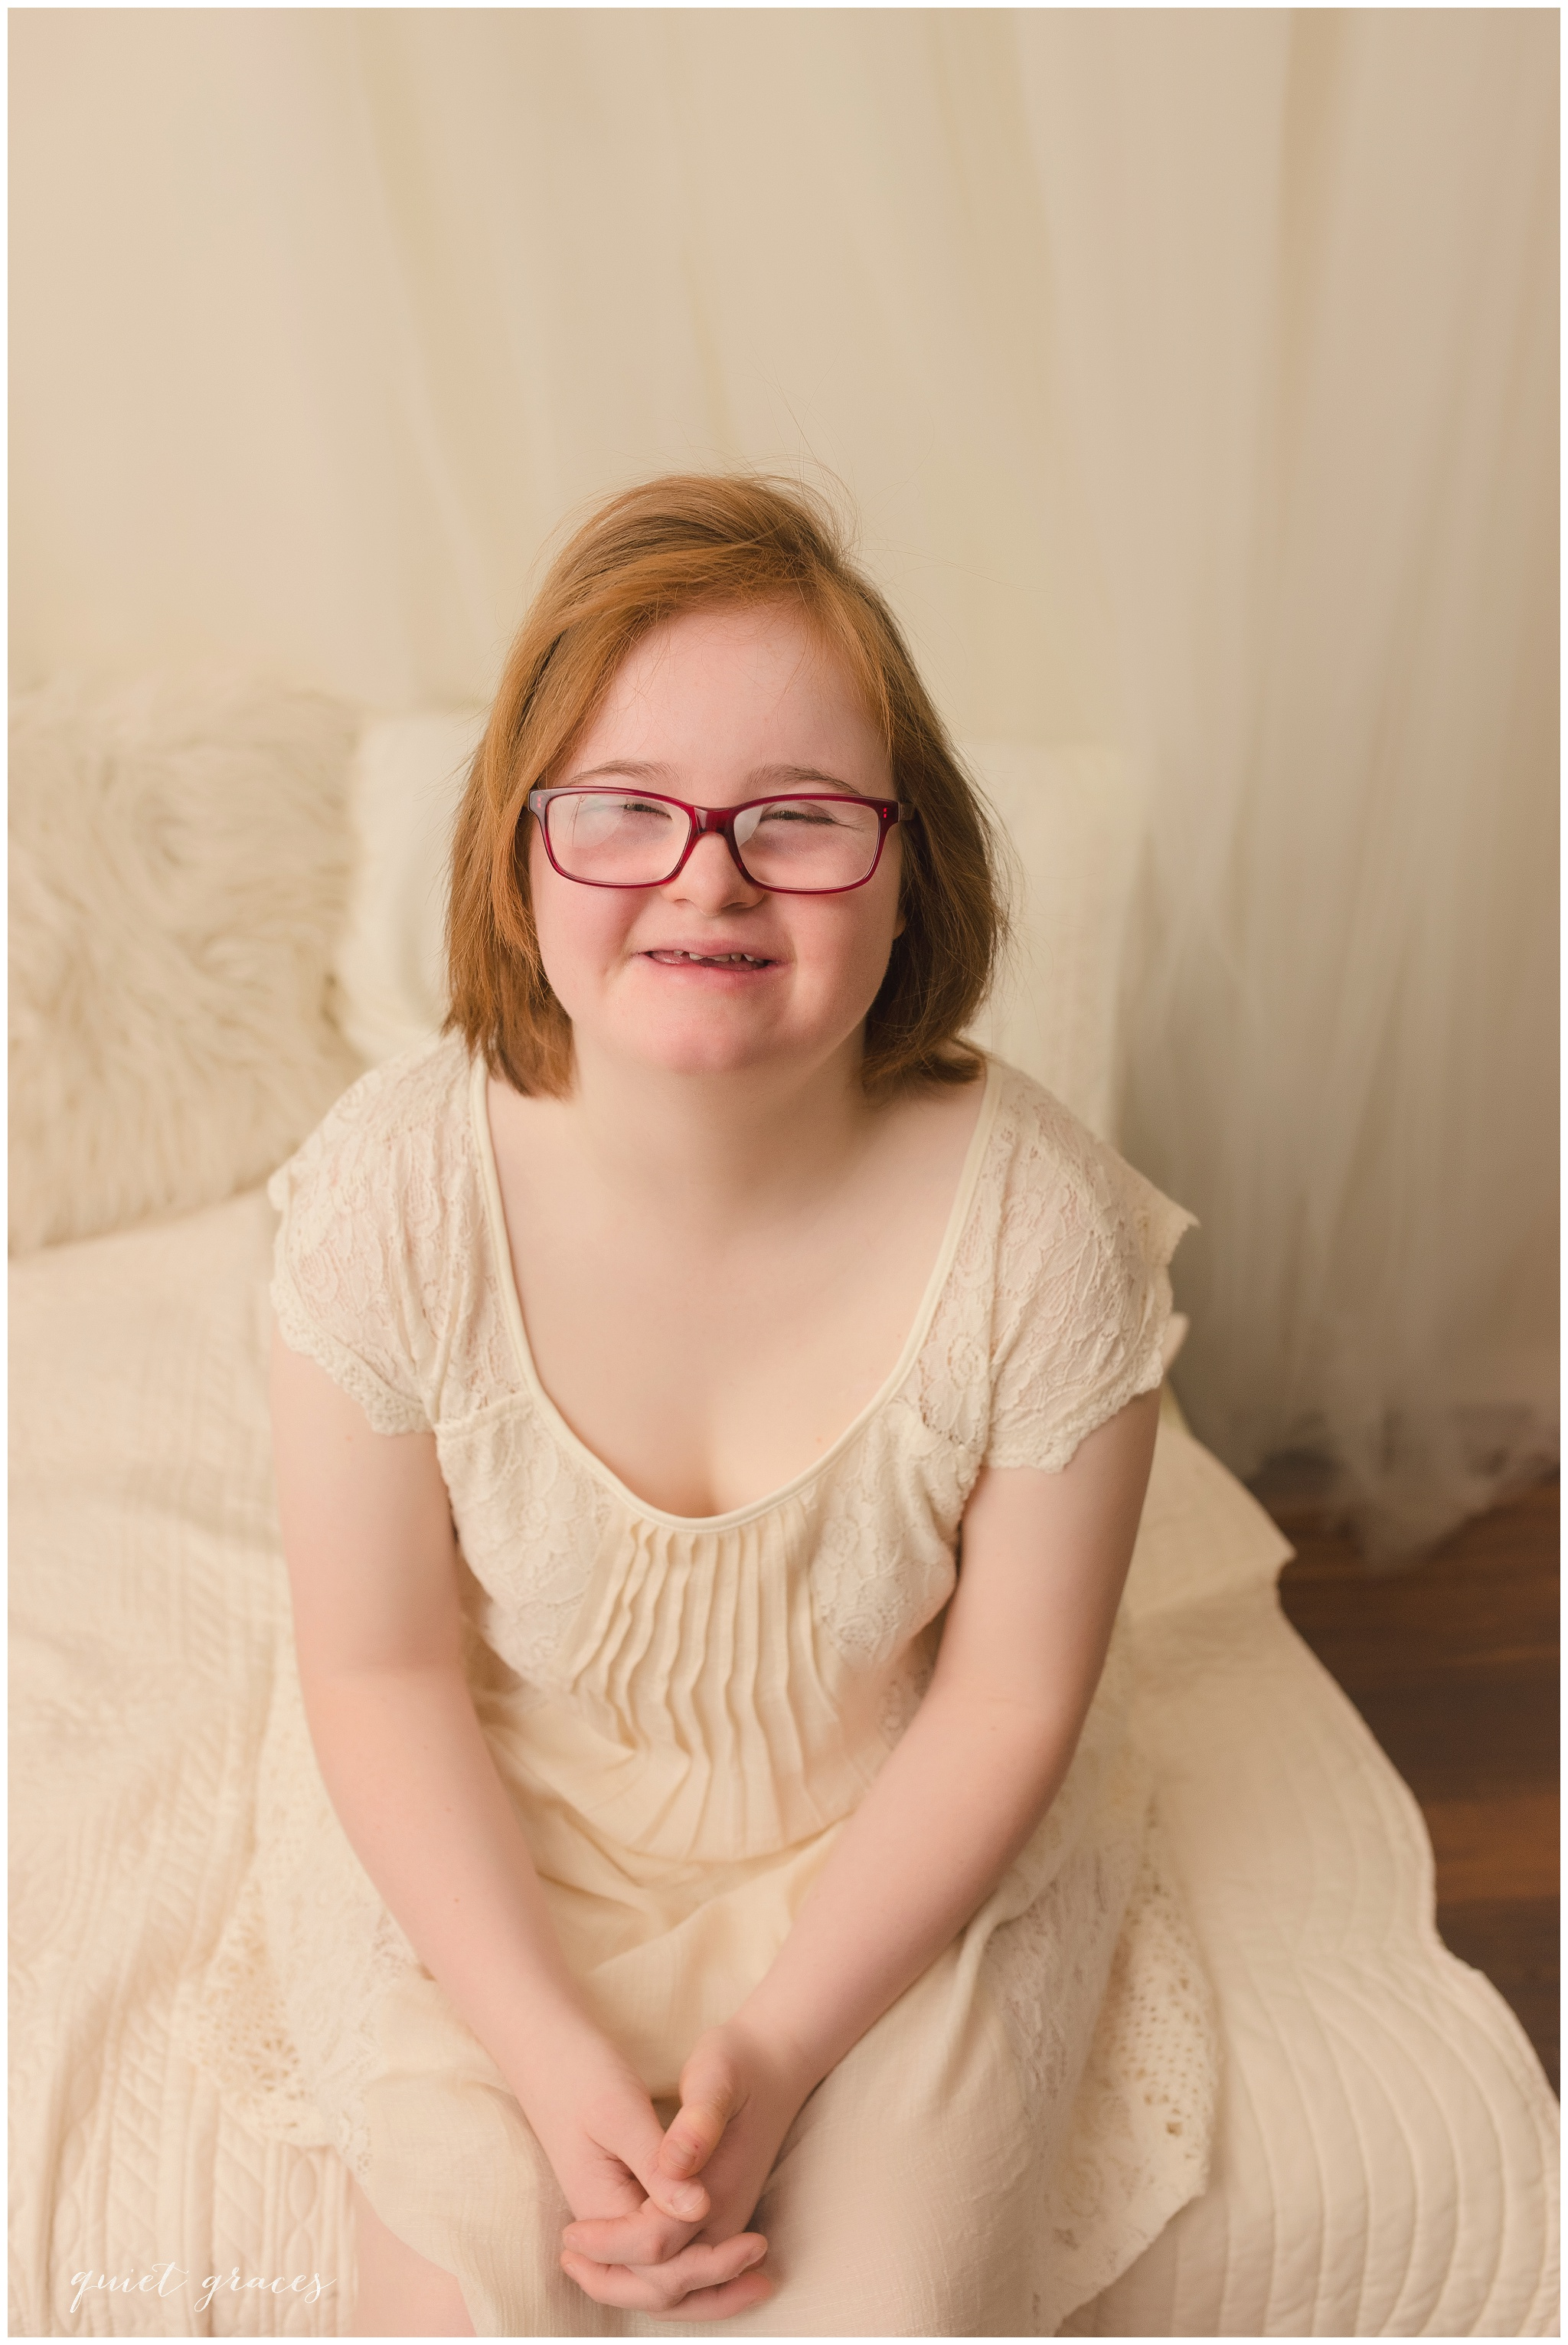 Young Adult with Down Syndrome